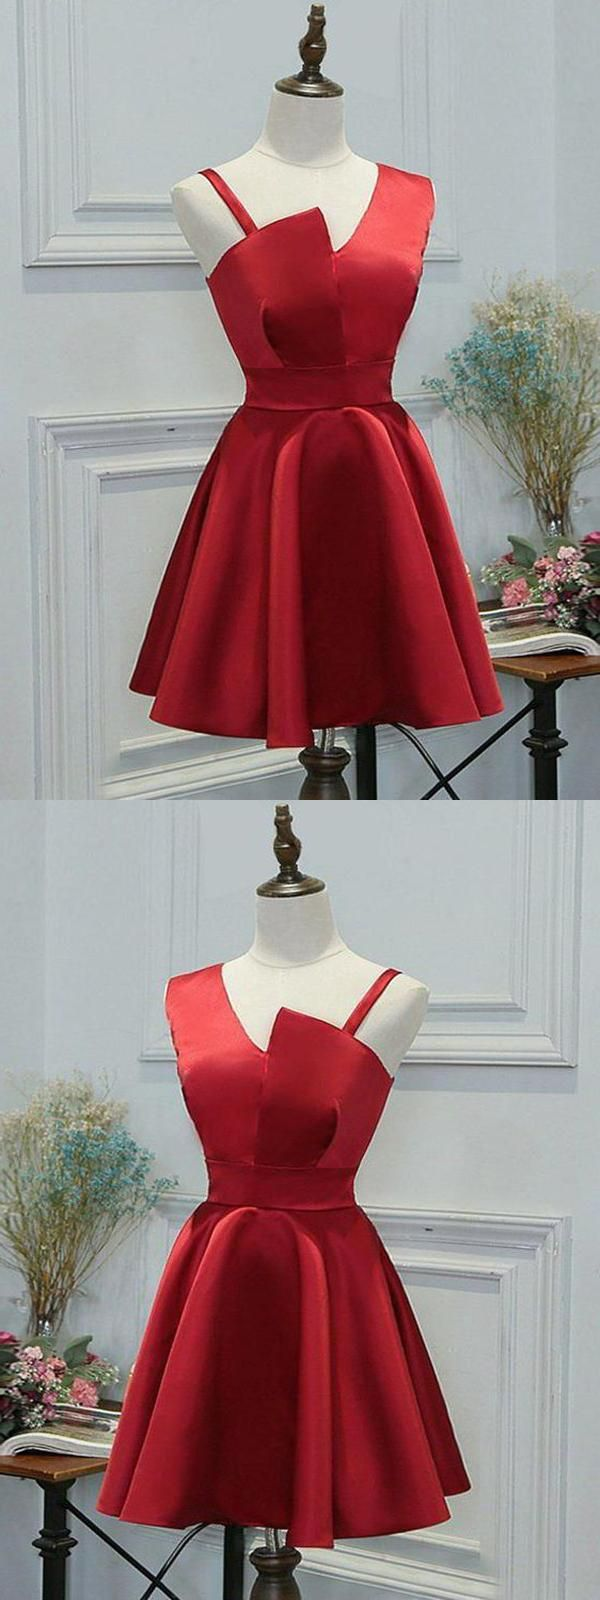 Discount outstanding homecoming dress unique red homecoming dress